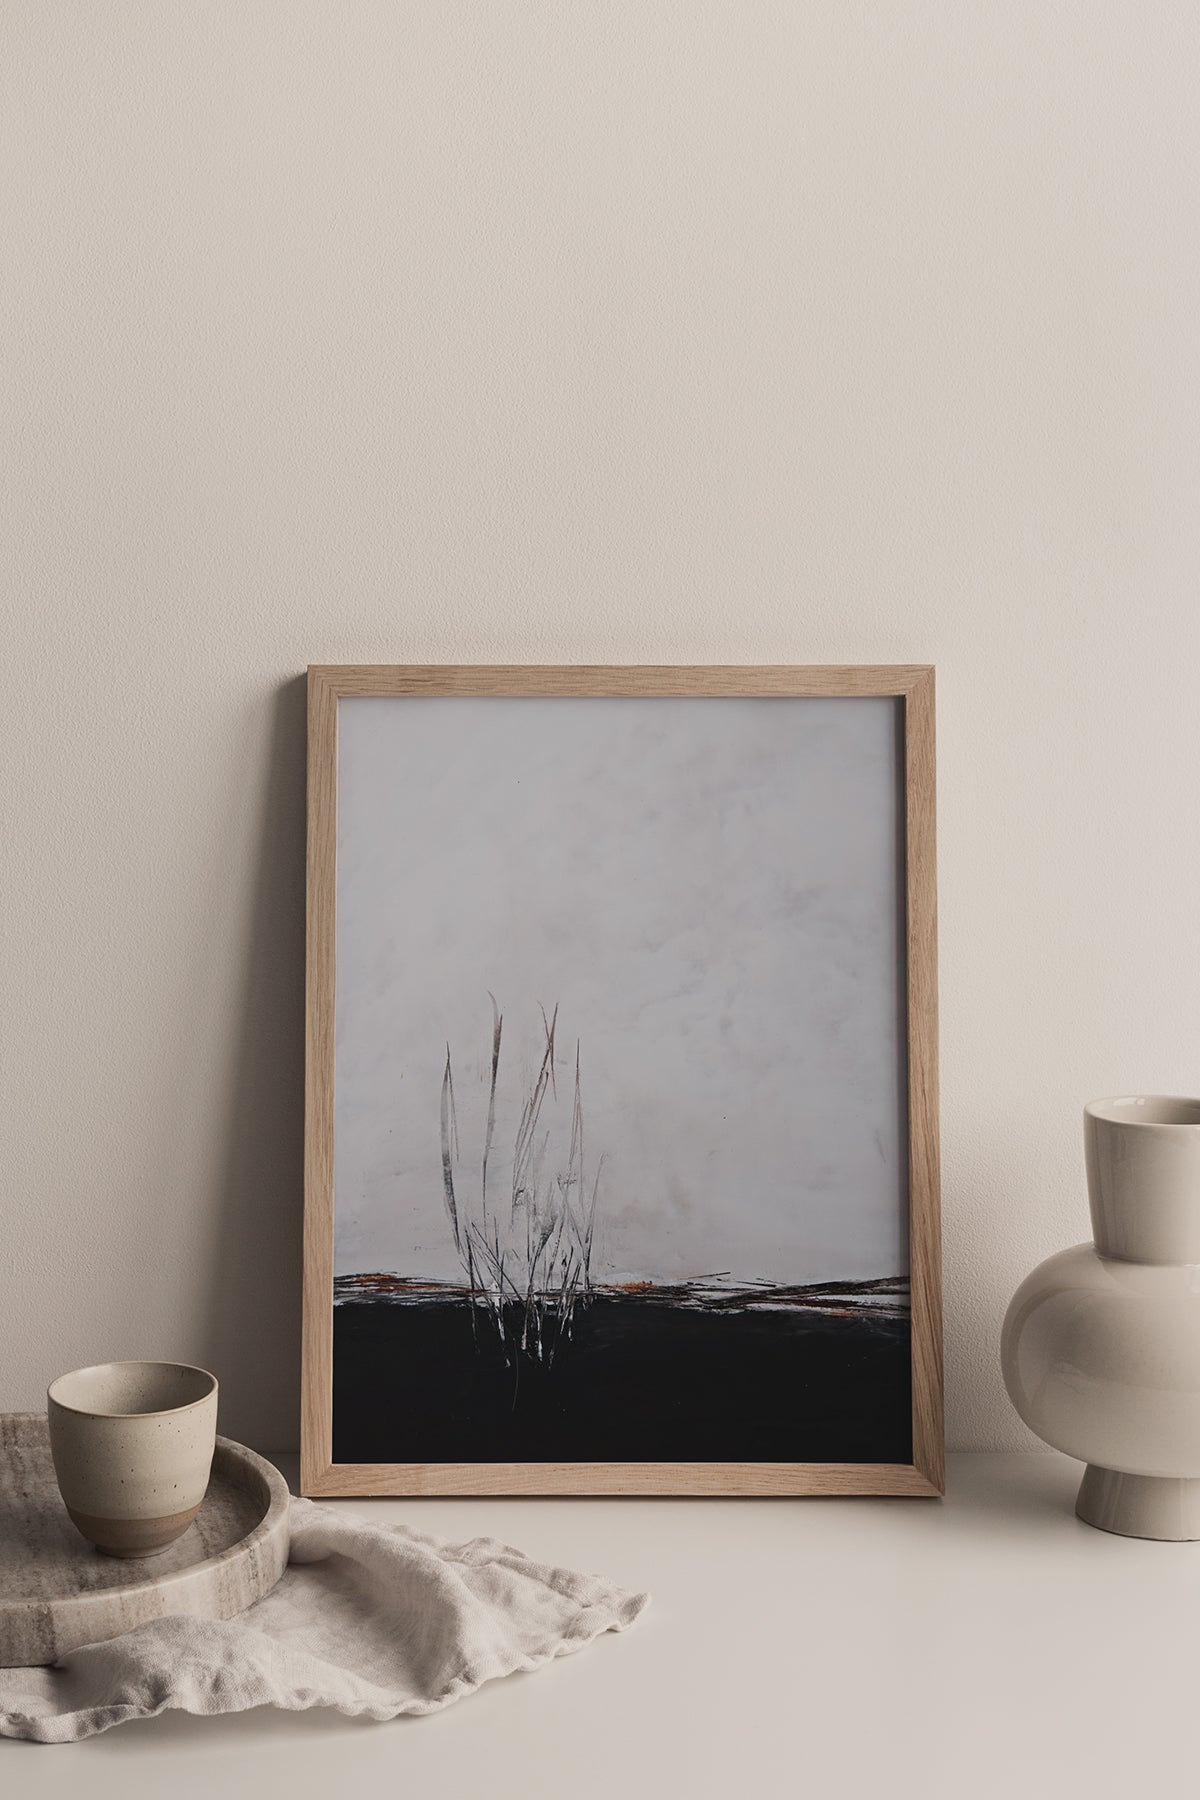 Hanlie Joubert | Calm | oil and cold wax on paper